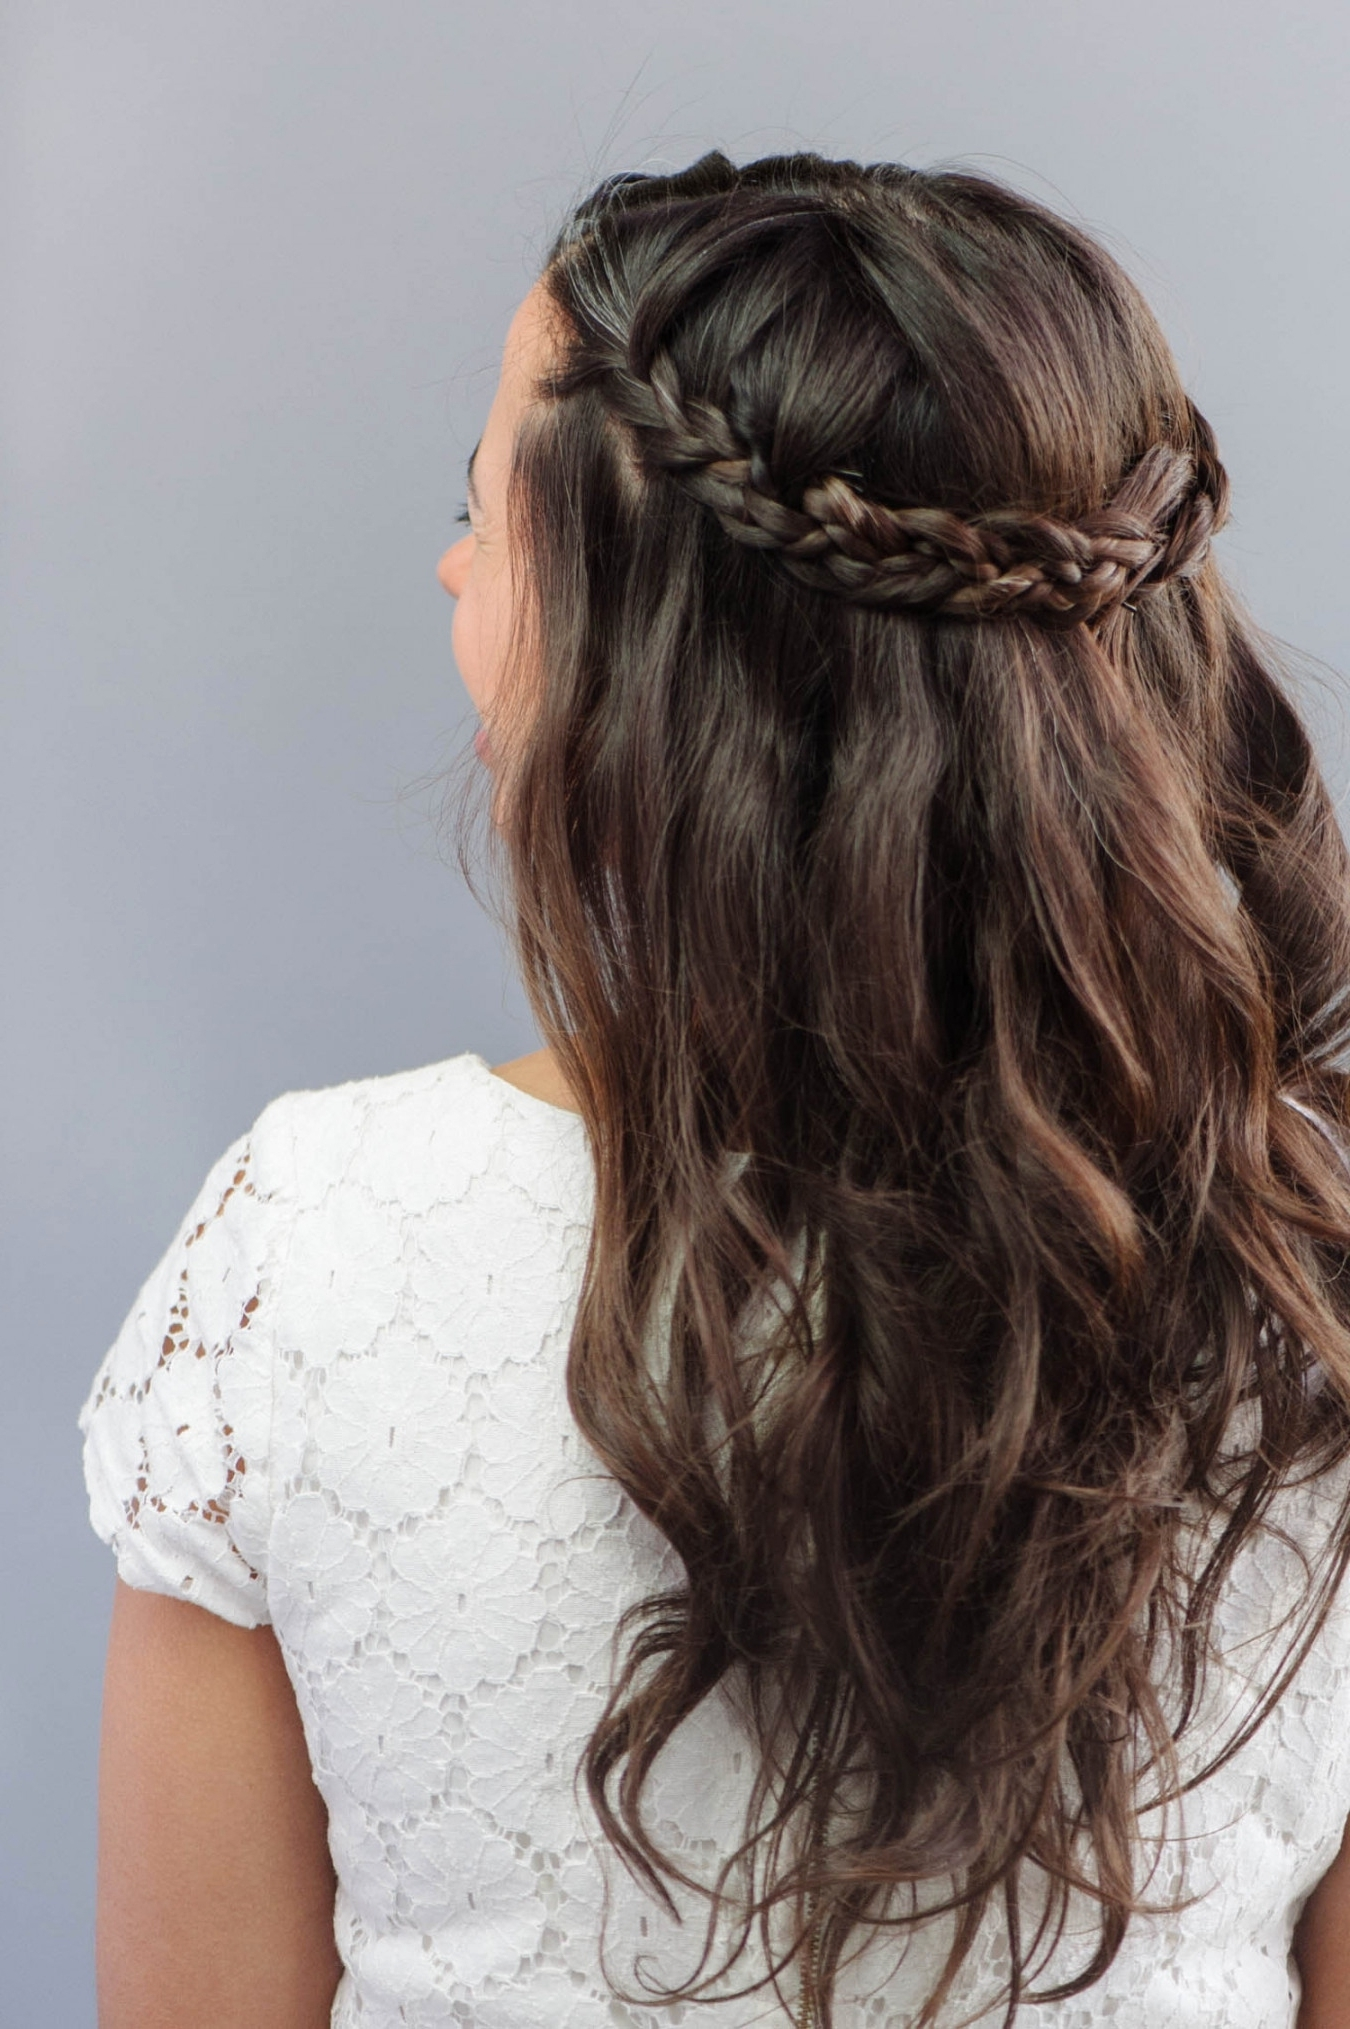 2017 Braided Wedding Hairstyles Intended For African Wedding Hairstyles Braids New How To Braided Wedding Hair (View 2 of 15)